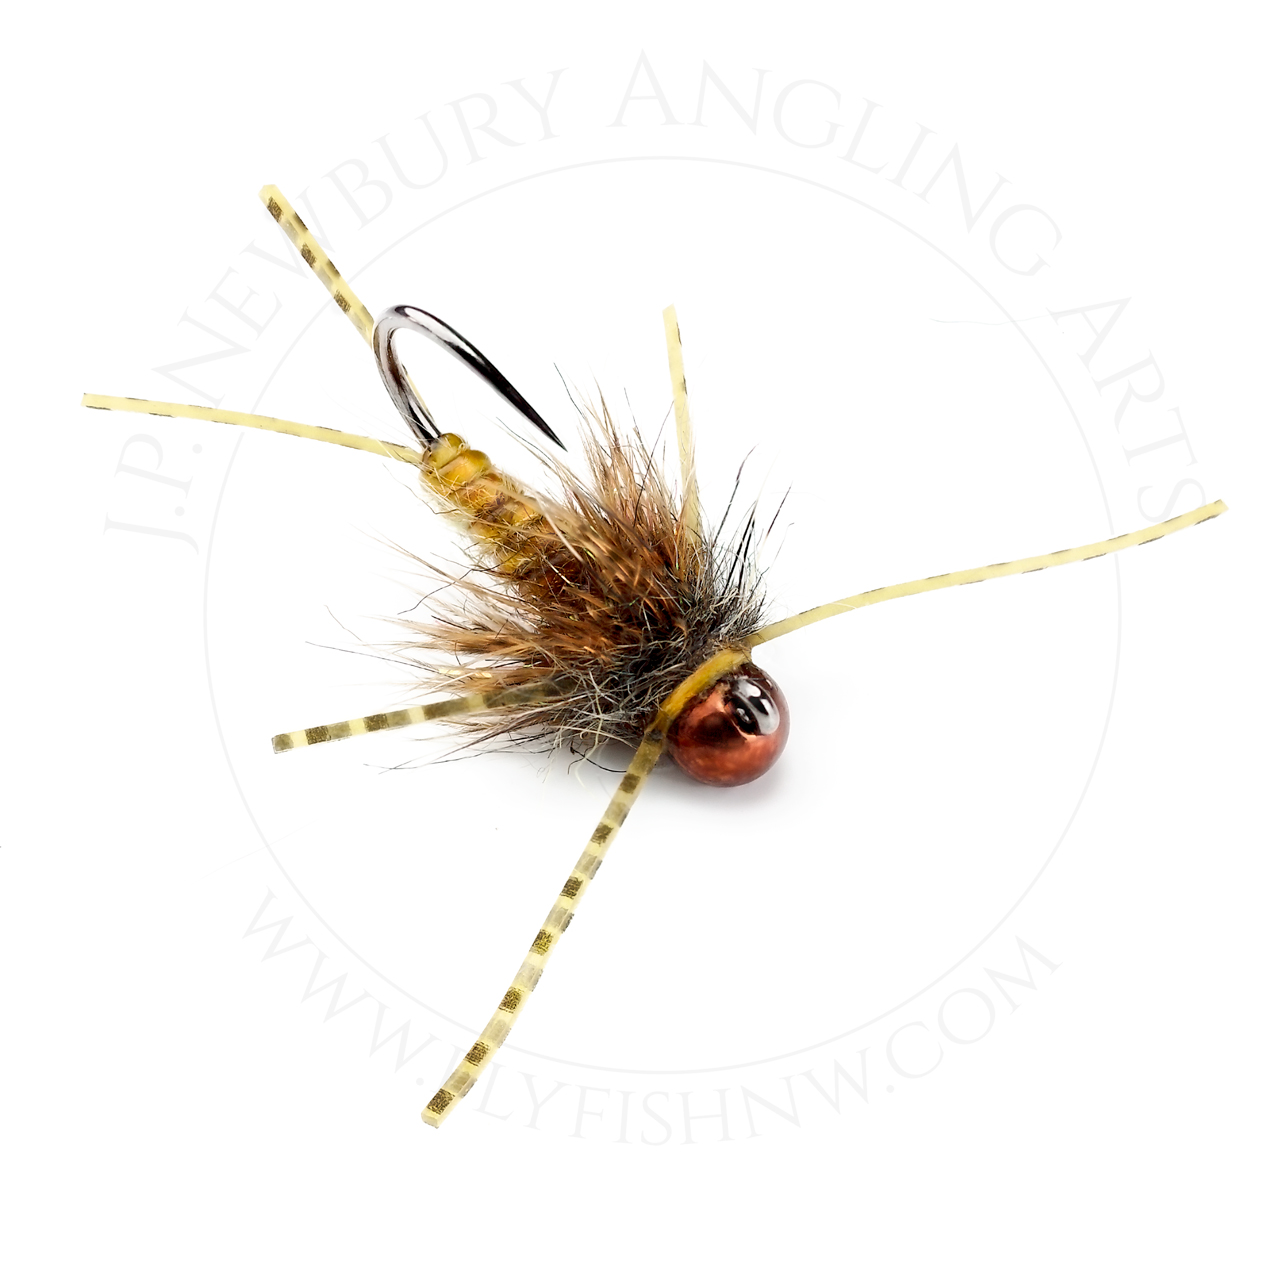 Tying a Knuckle Dragger